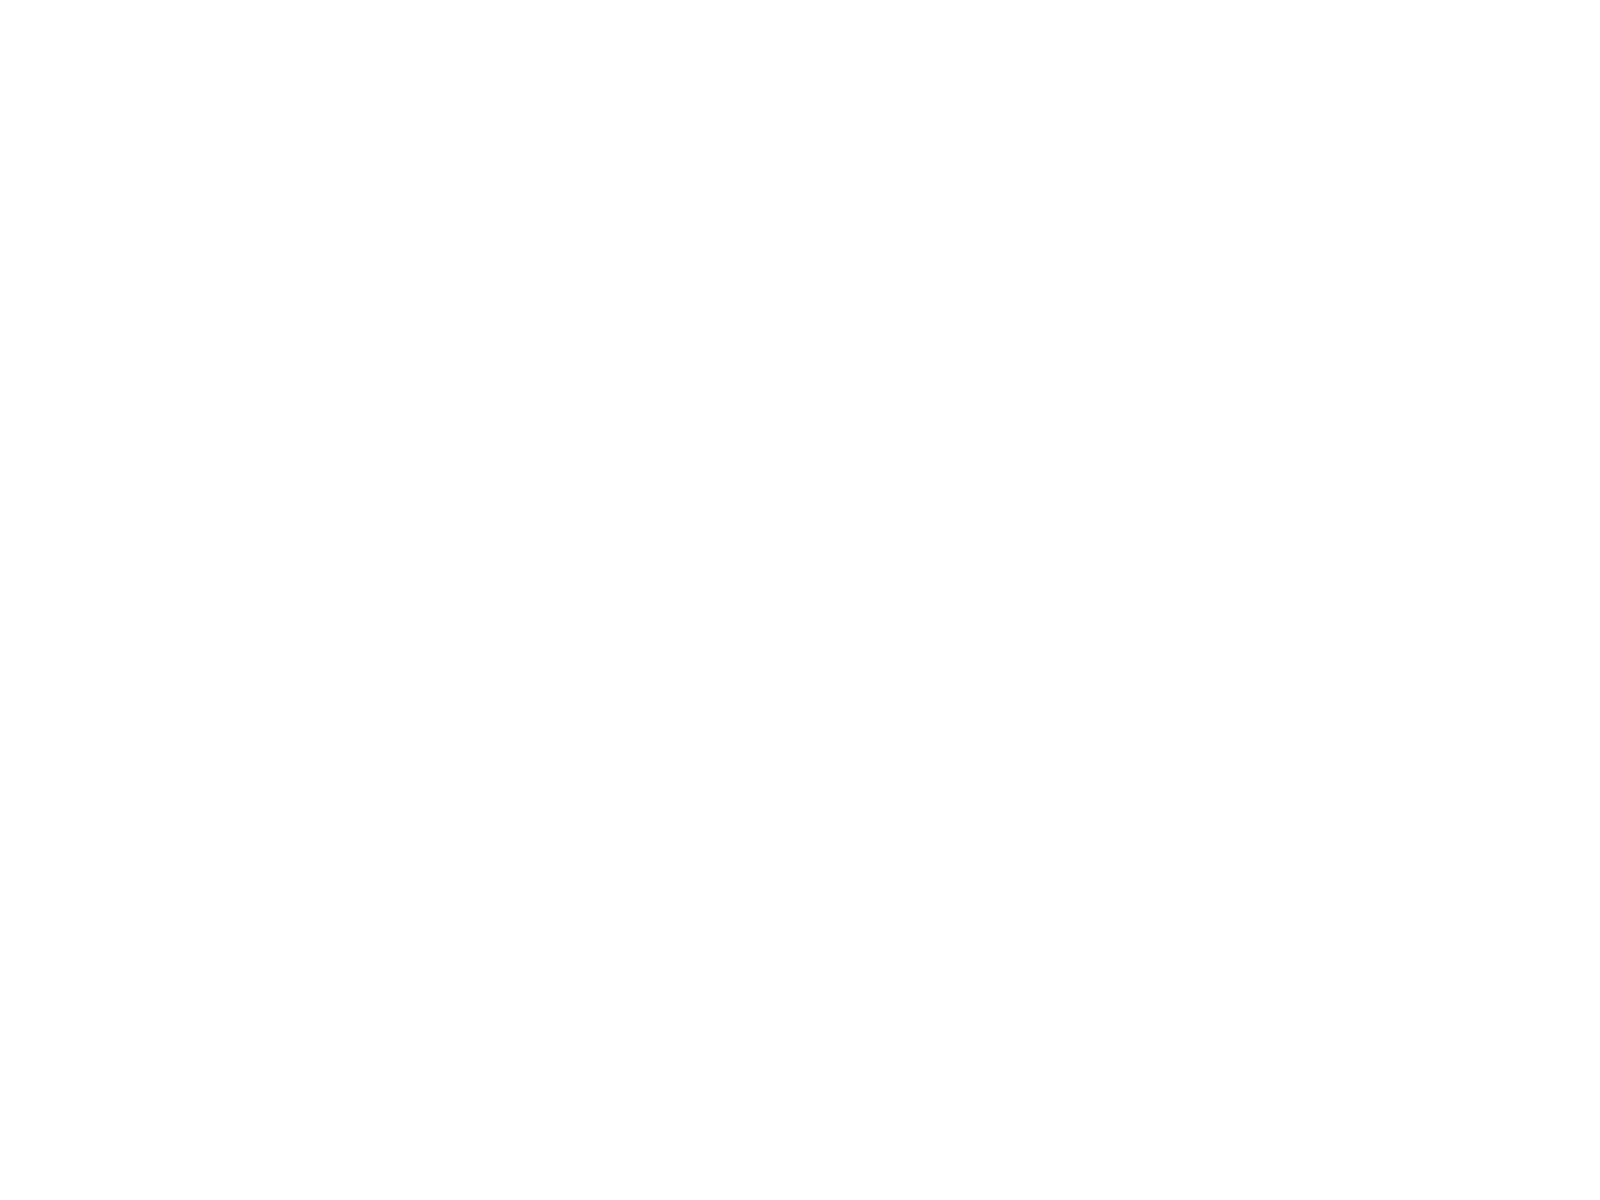 Down to Earth yogastudio